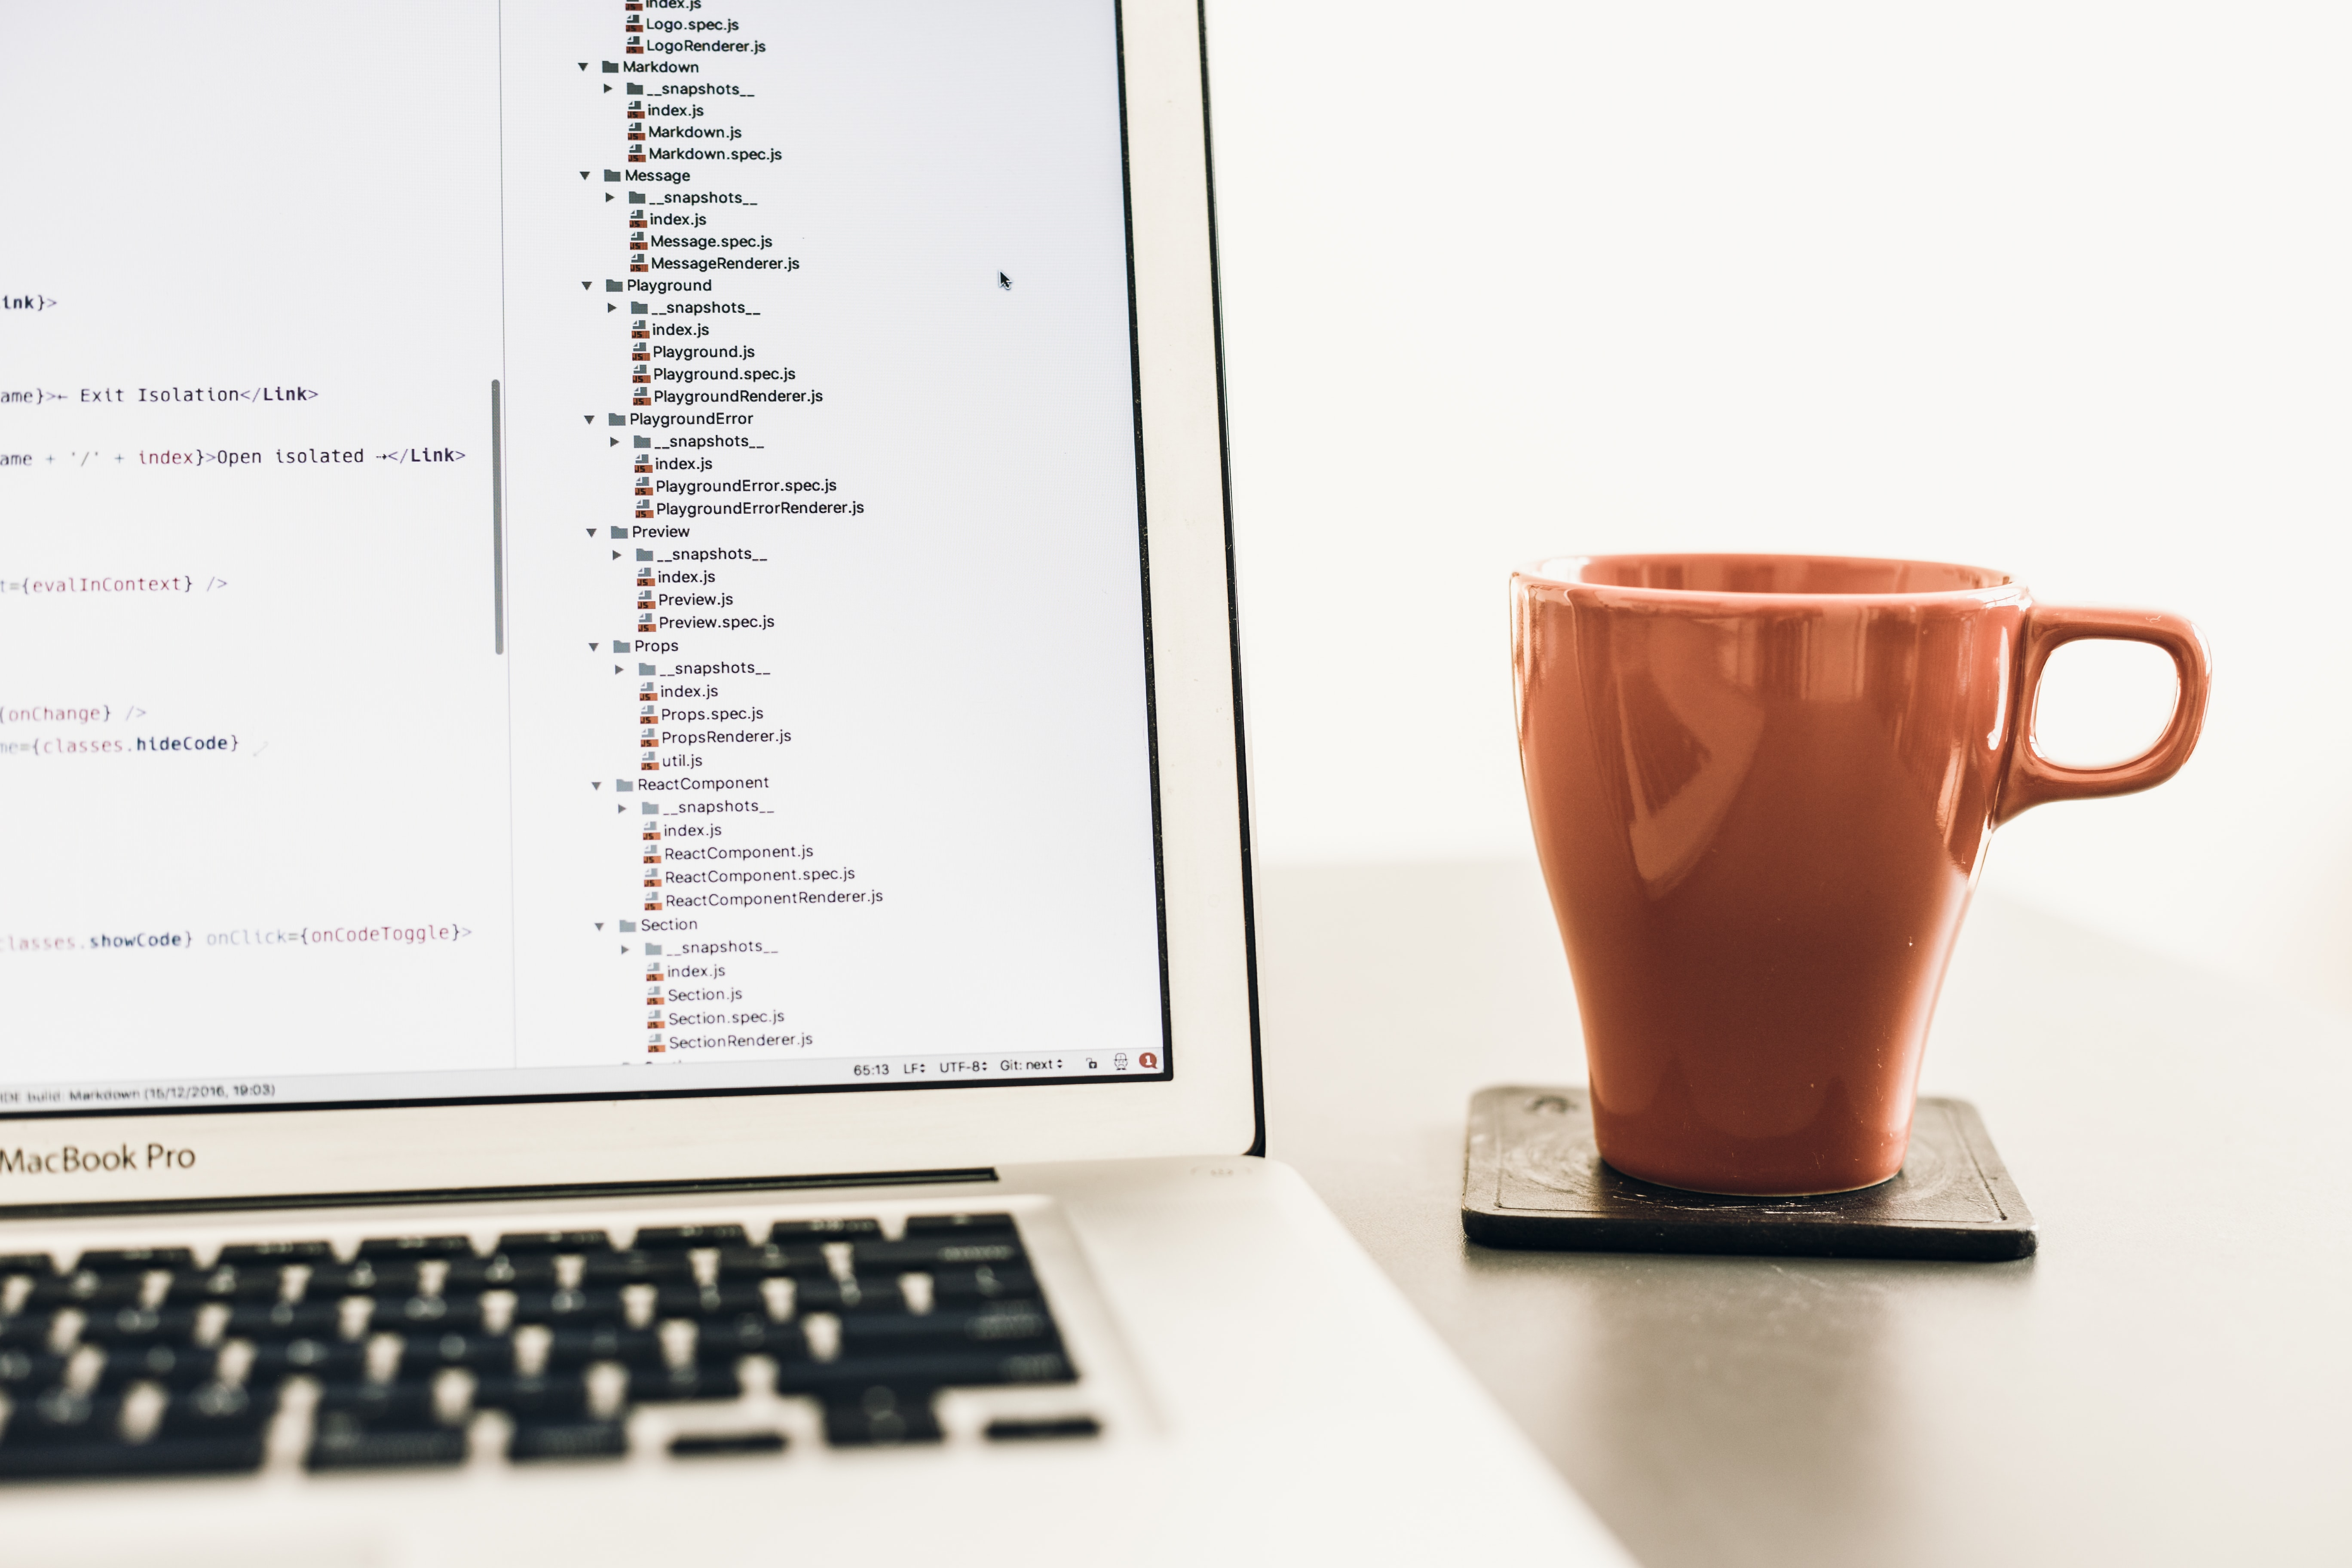 A brown mug next to a MacBook with lines of code on its screen